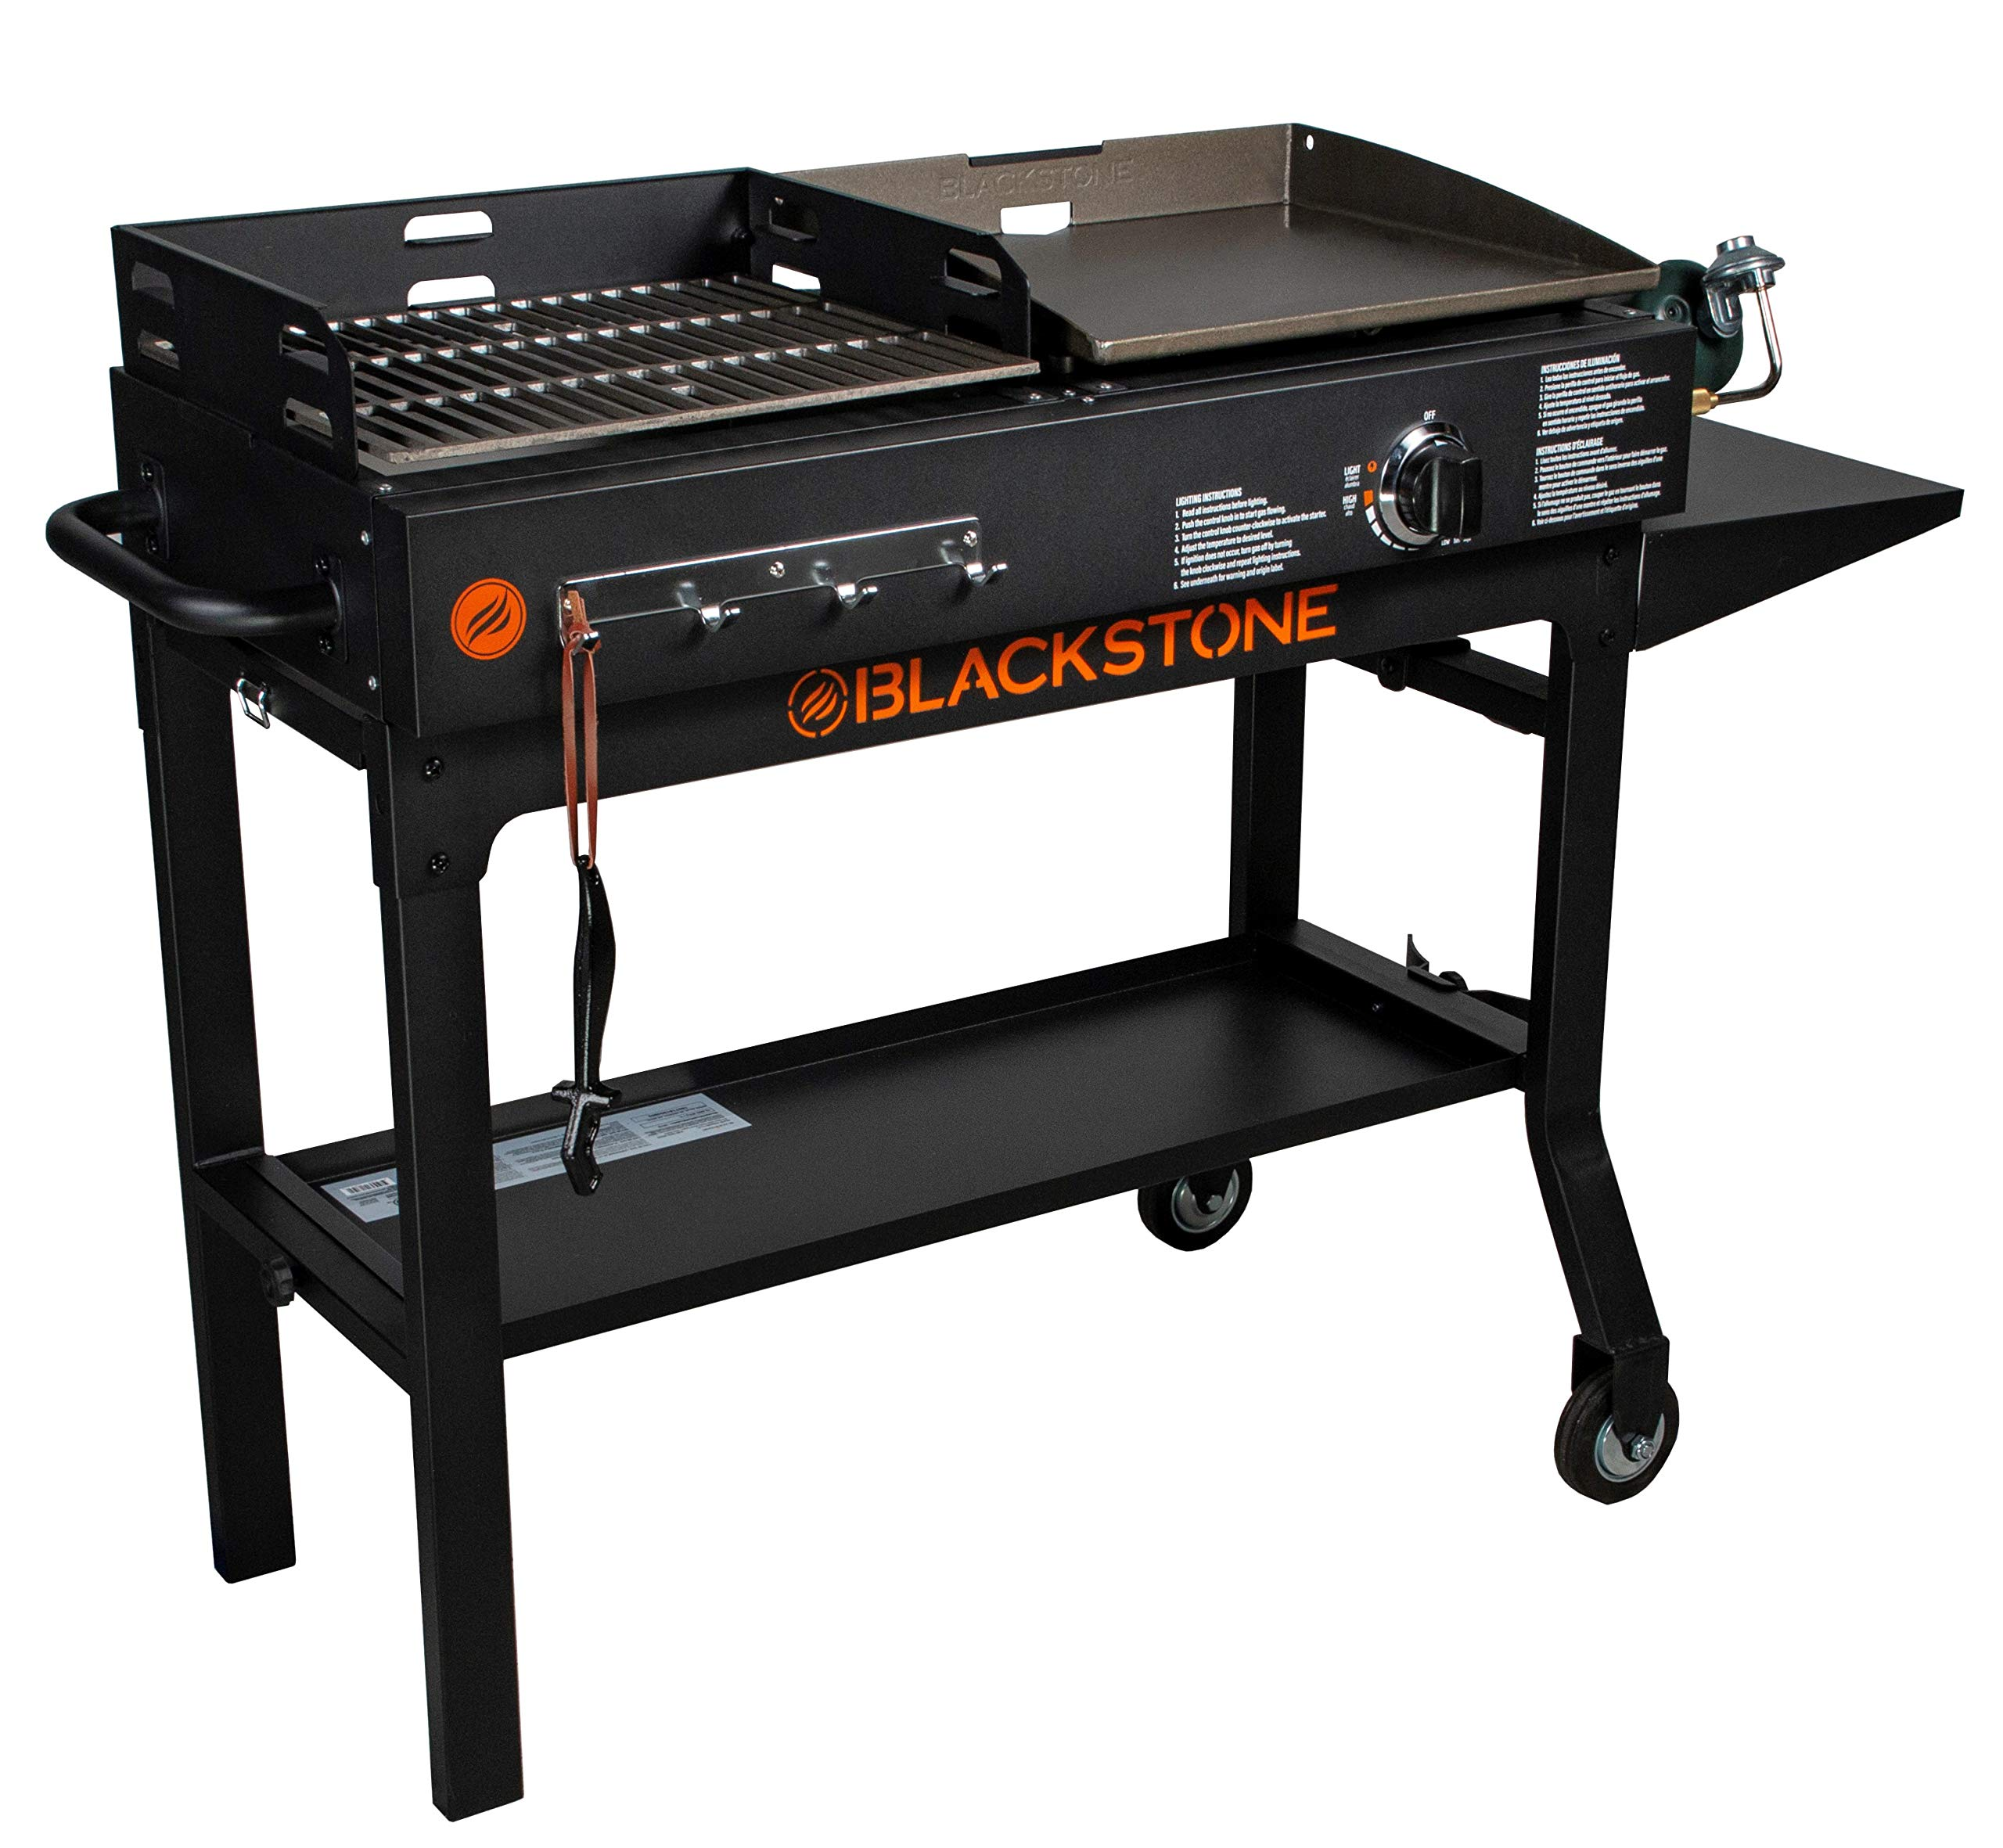 BSTONE Easy Assemble Care, Store and Use Tough Durable Ever Reliable Blackstone Griddle & Charcoal Grill Combo 1819 - Serve Up Really Tasty Meals with That Distinct Grilled to Perfection Flavor